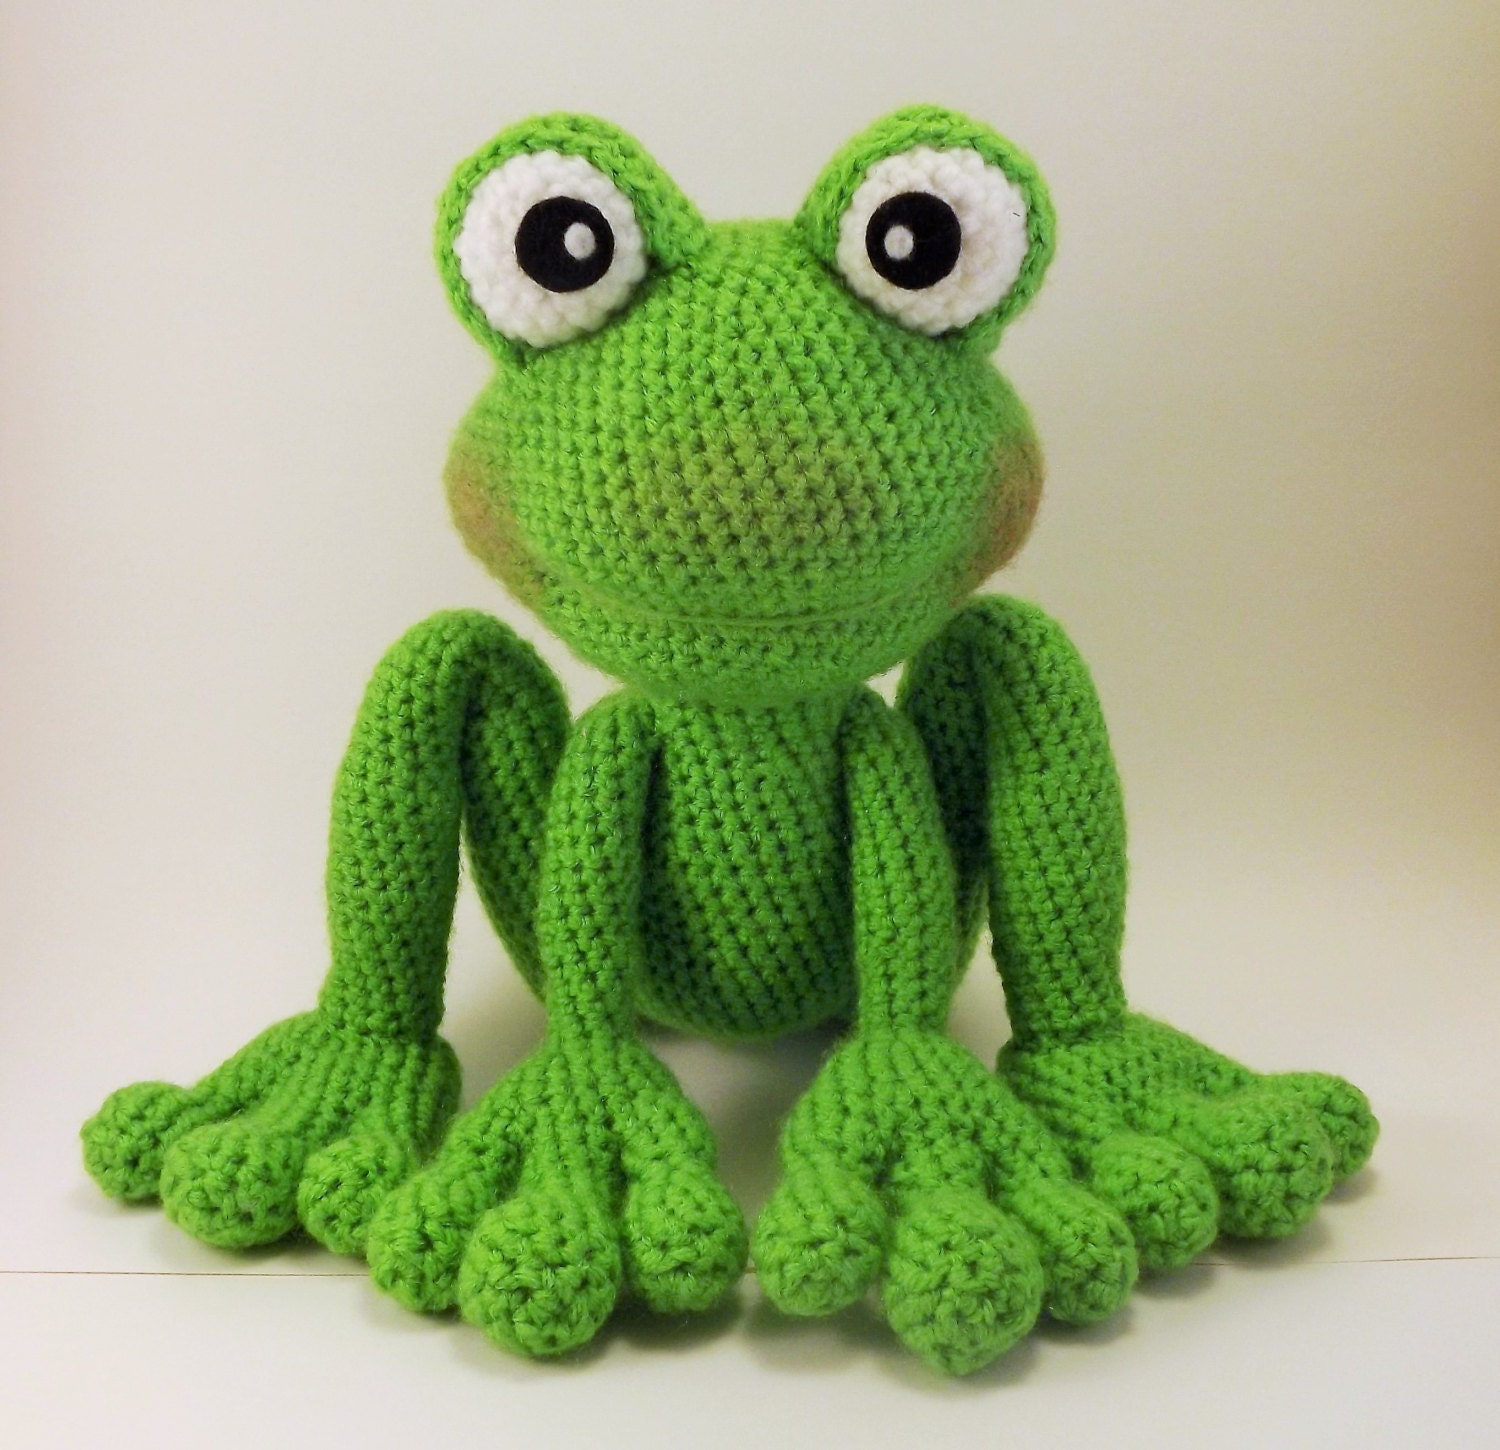 froggy amigurumi pattern frog crochet pattern pdf file only. Black Bedroom Furniture Sets. Home Design Ideas